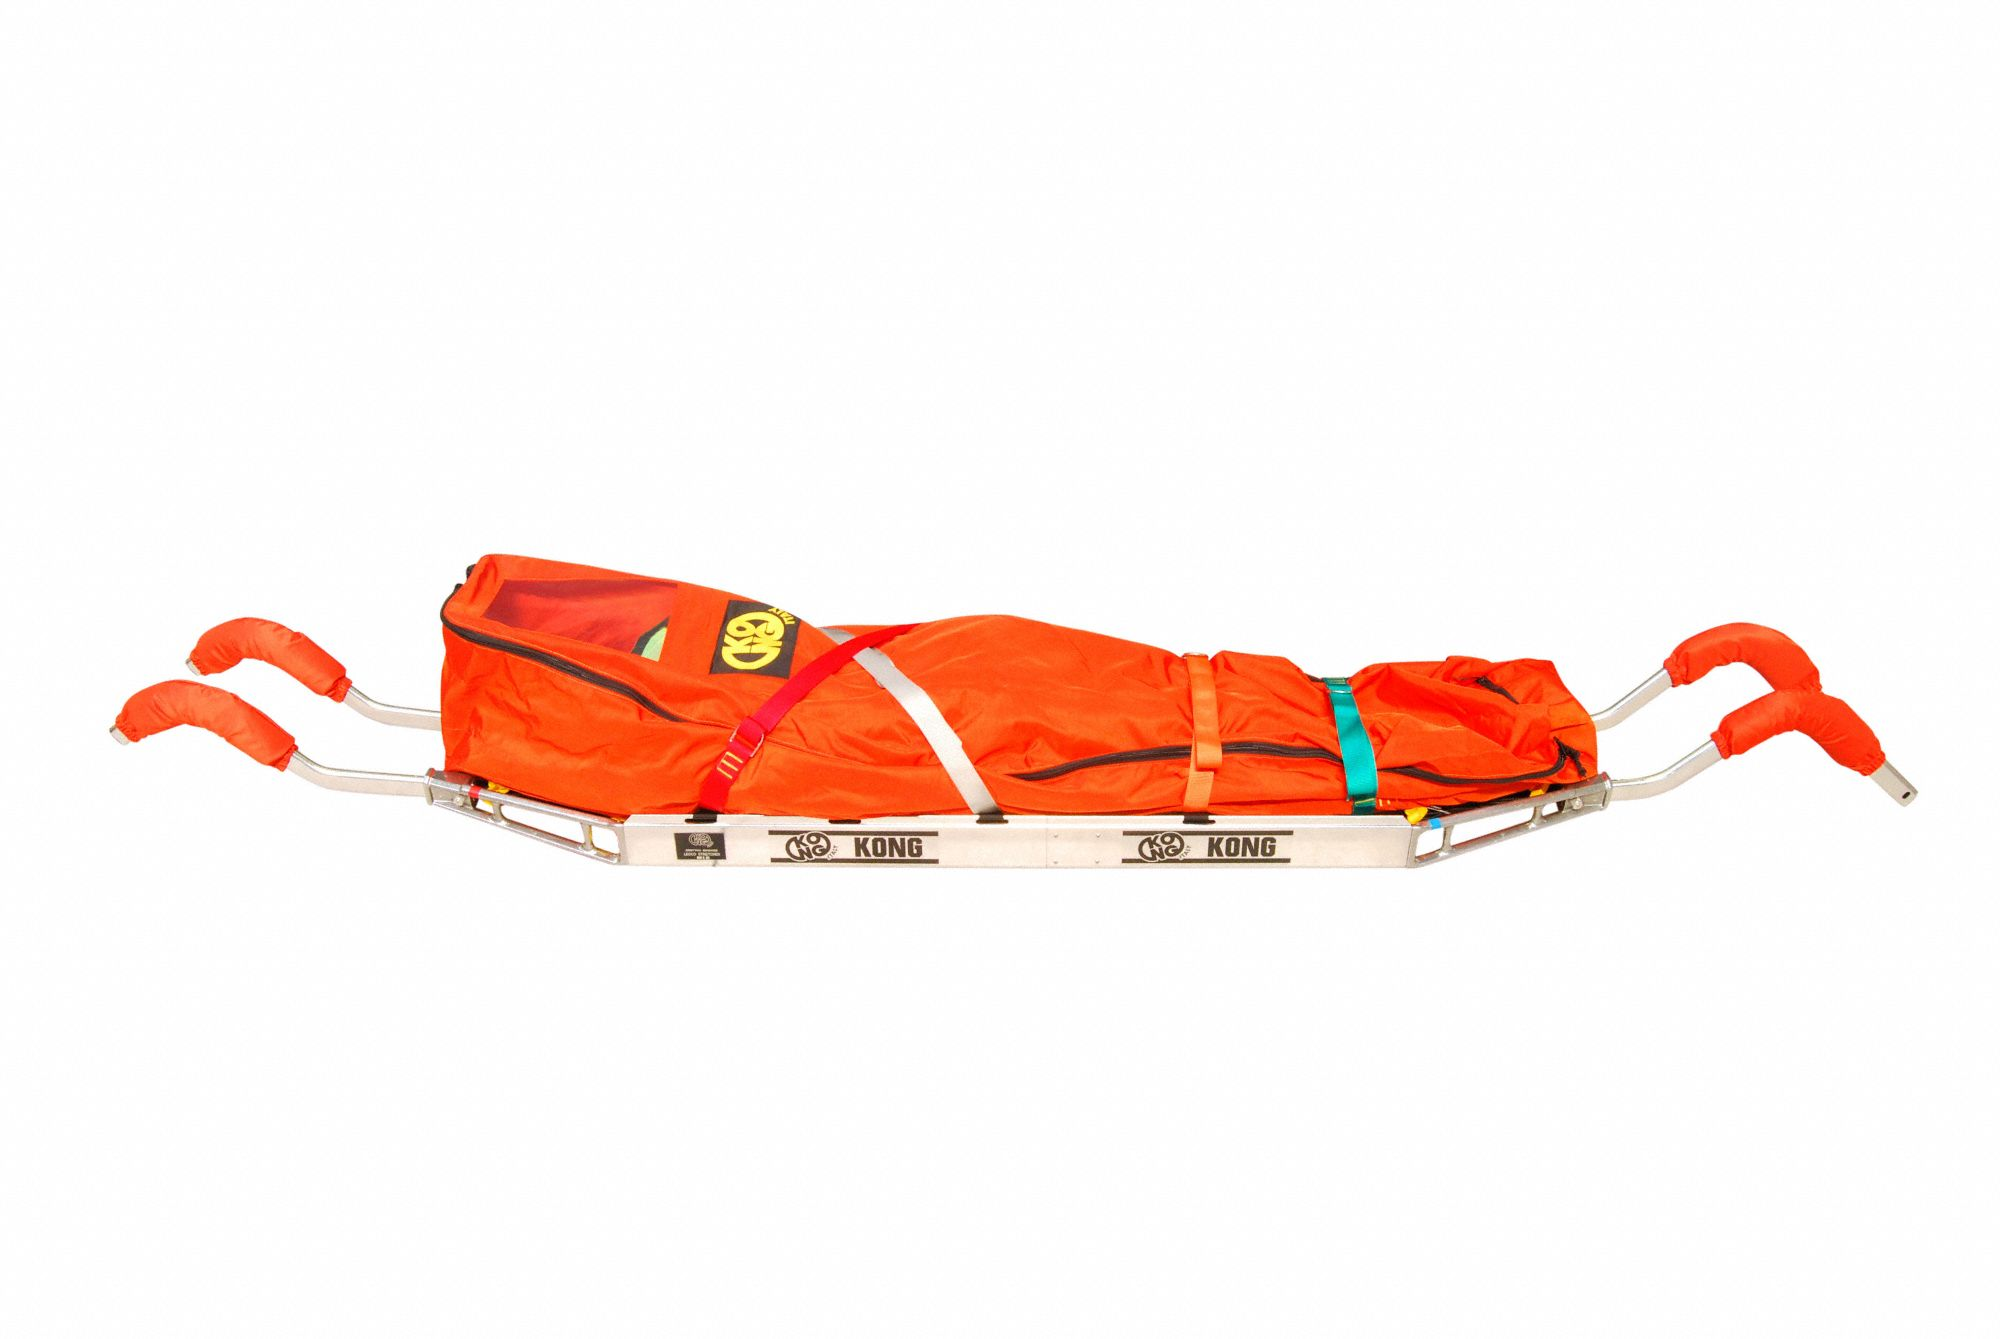 Basket Stretcher,Orange,Weight Cap.900lb